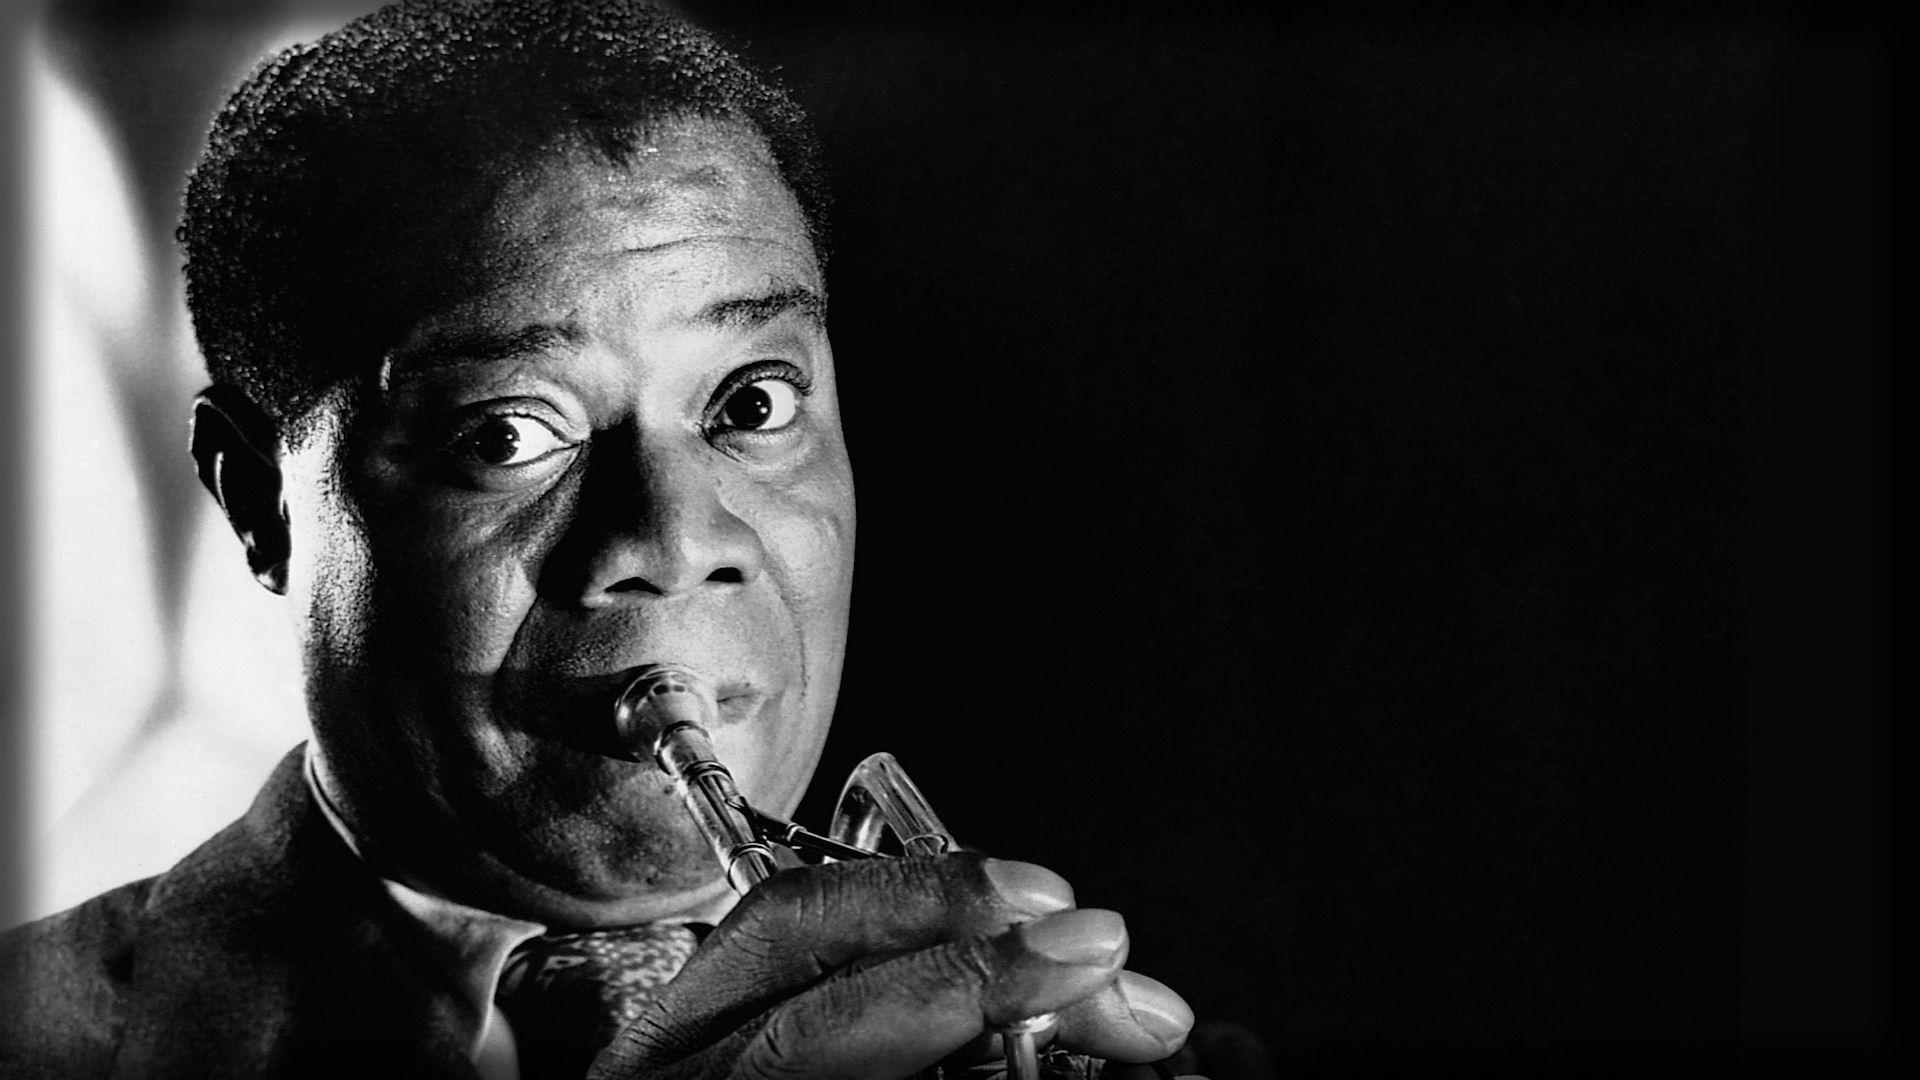 Download Wallpaper 1920x1080 louis armstrong, look, pipe, face ...